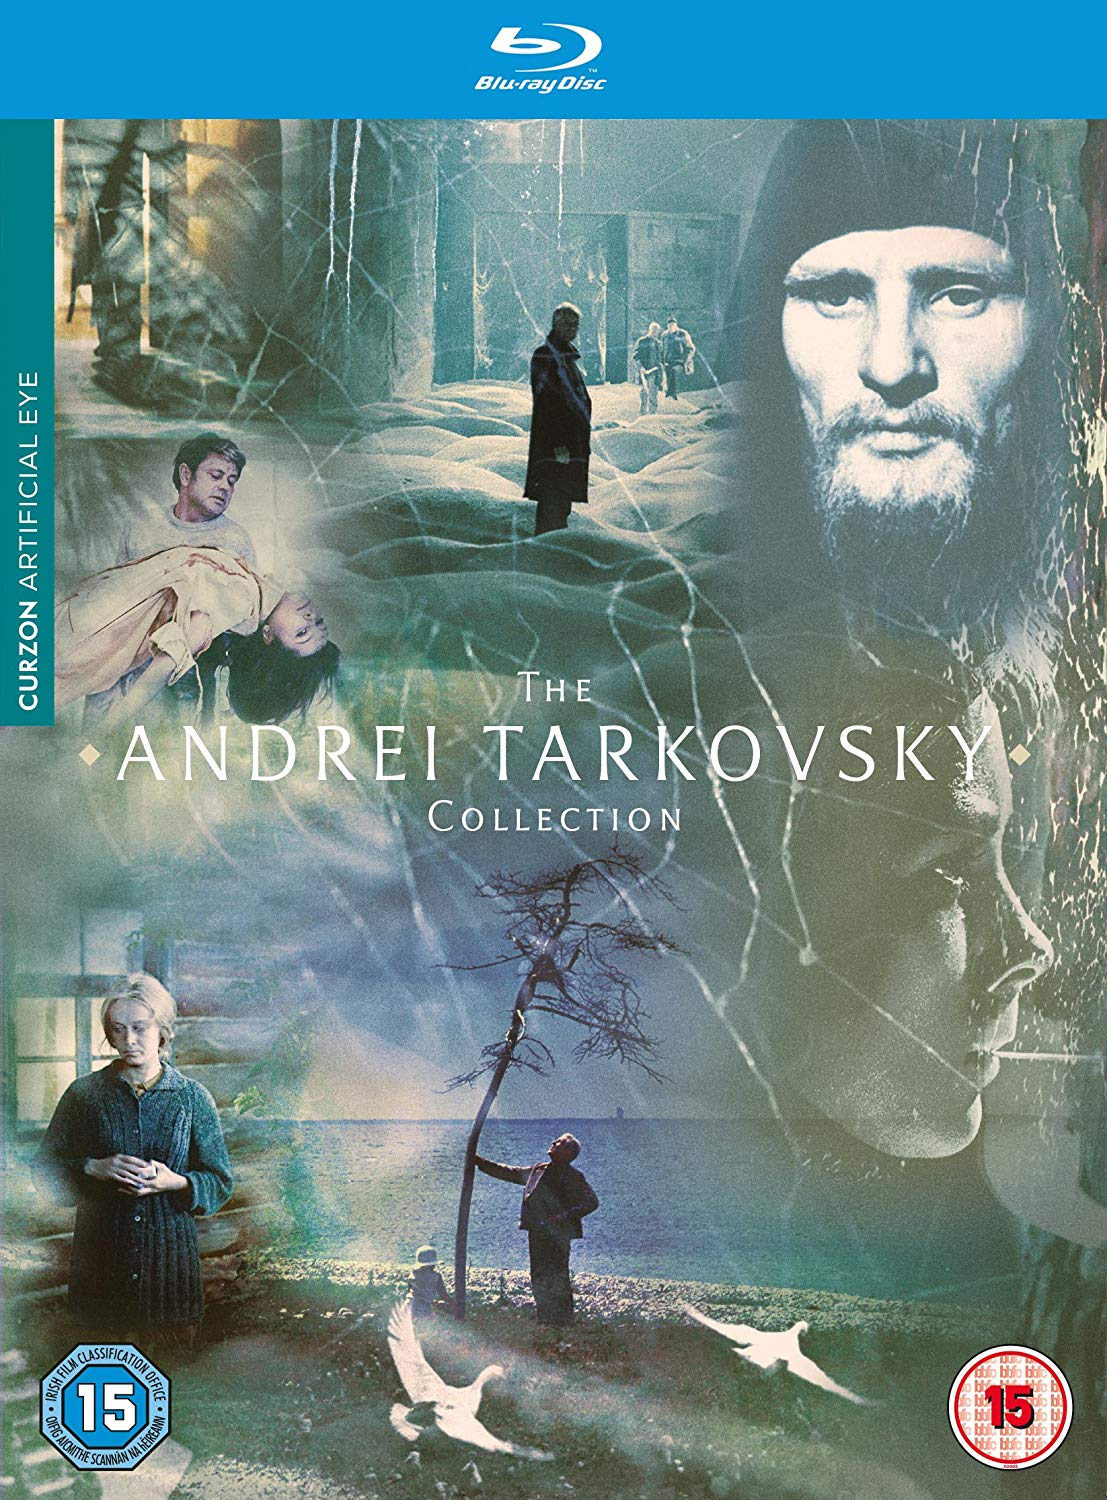 Buy The Andrei Tarkovsky Collection (Blu-ray Box Set)